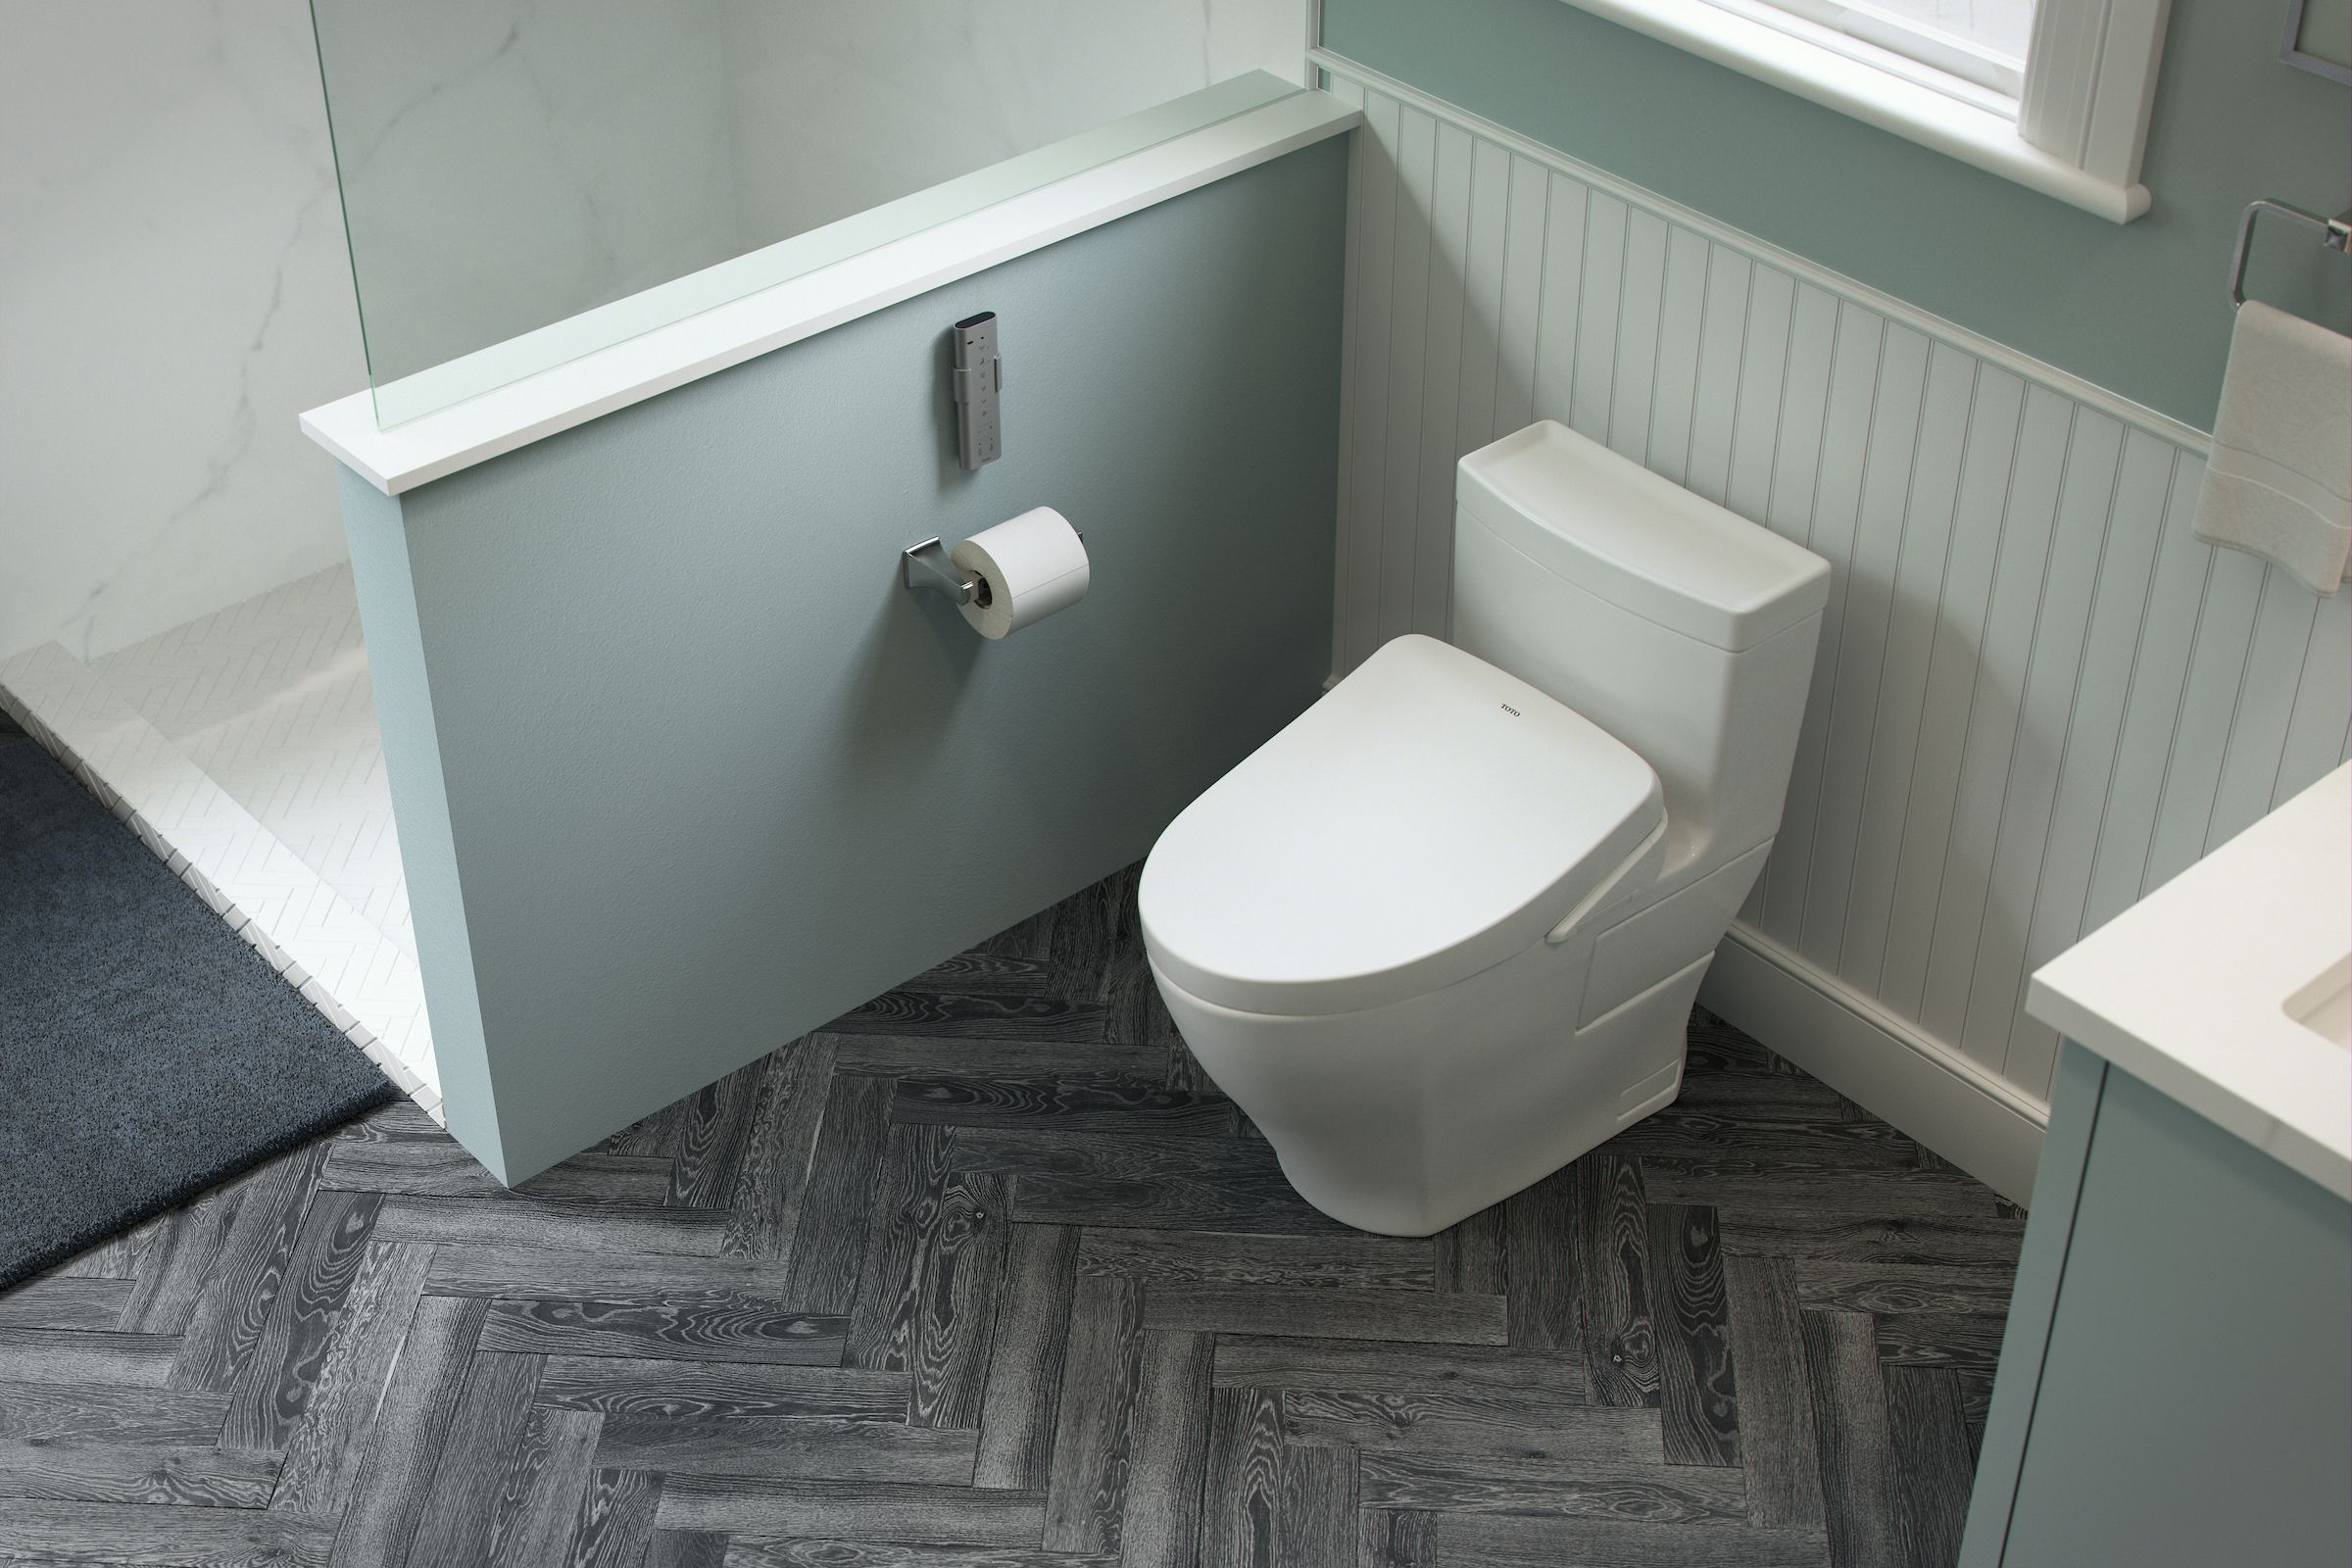 Bold Design And High Efficiency Characterize The Aimes Toilet With A Variety Of Glaze Colors This Toilet Seamlessly I Toilet One Piece Toilets Bathroom Style